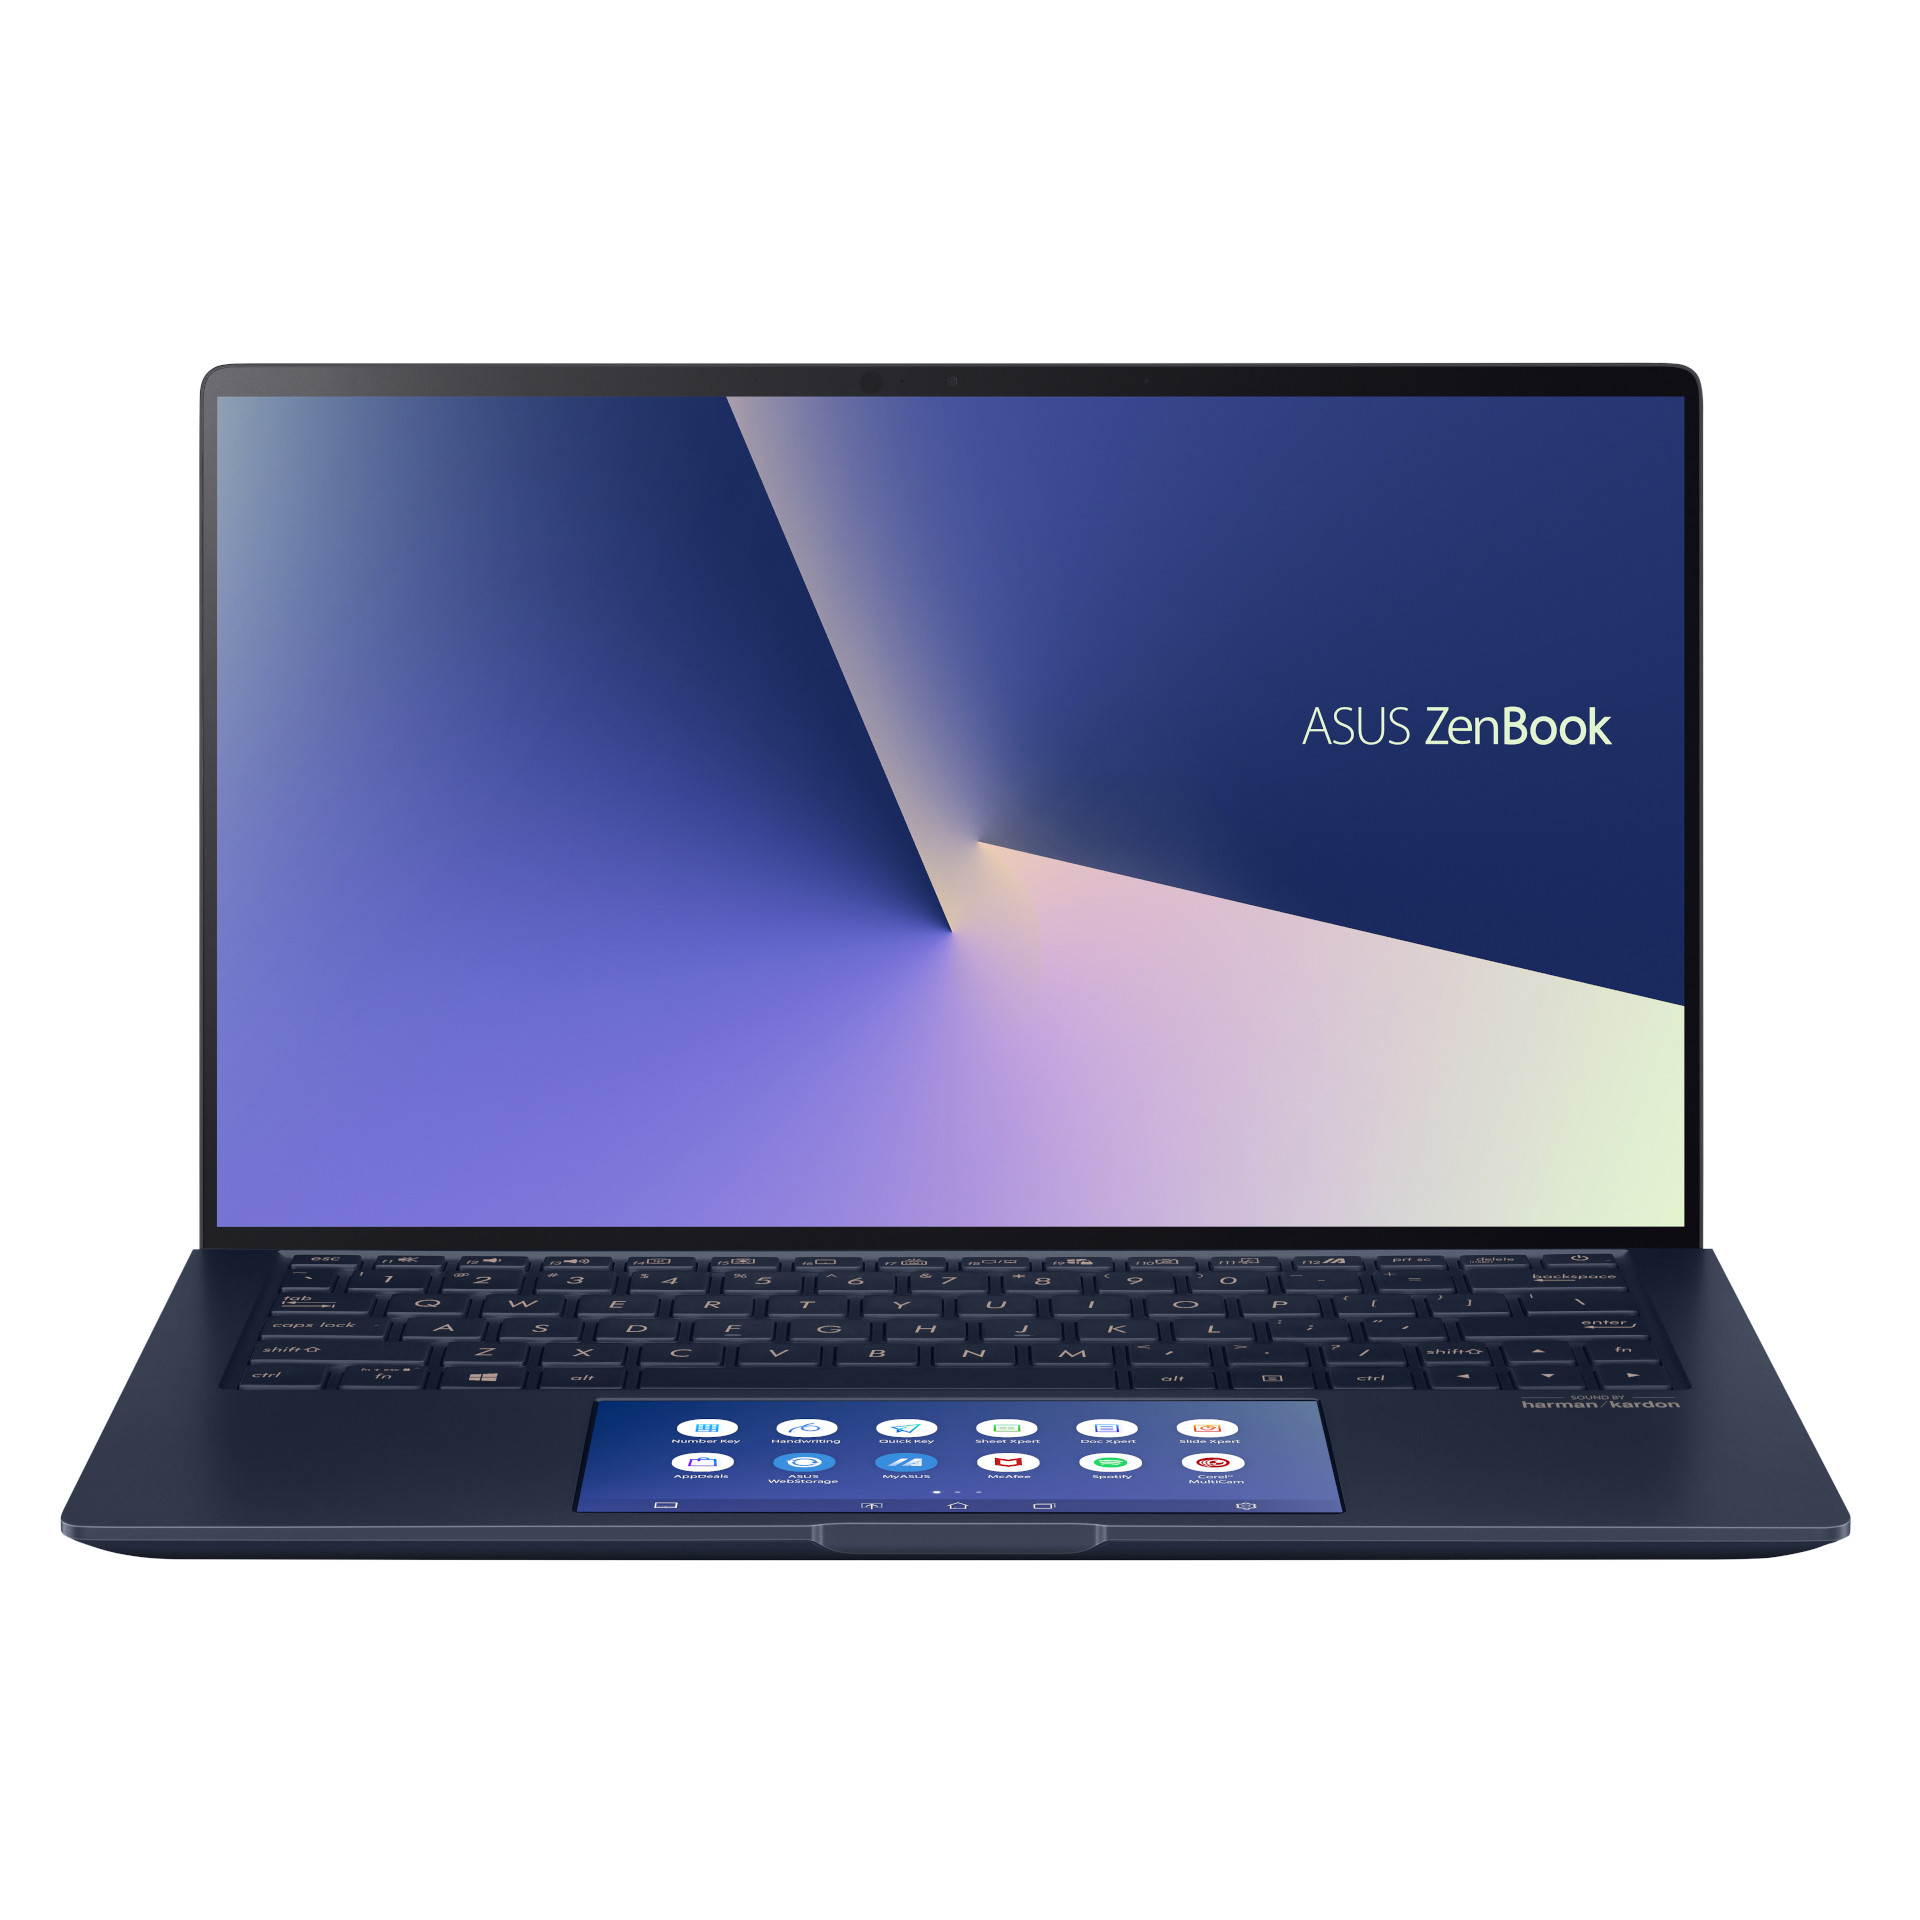 ASUS-UX334-ROYAL-BLUE-01.jpg